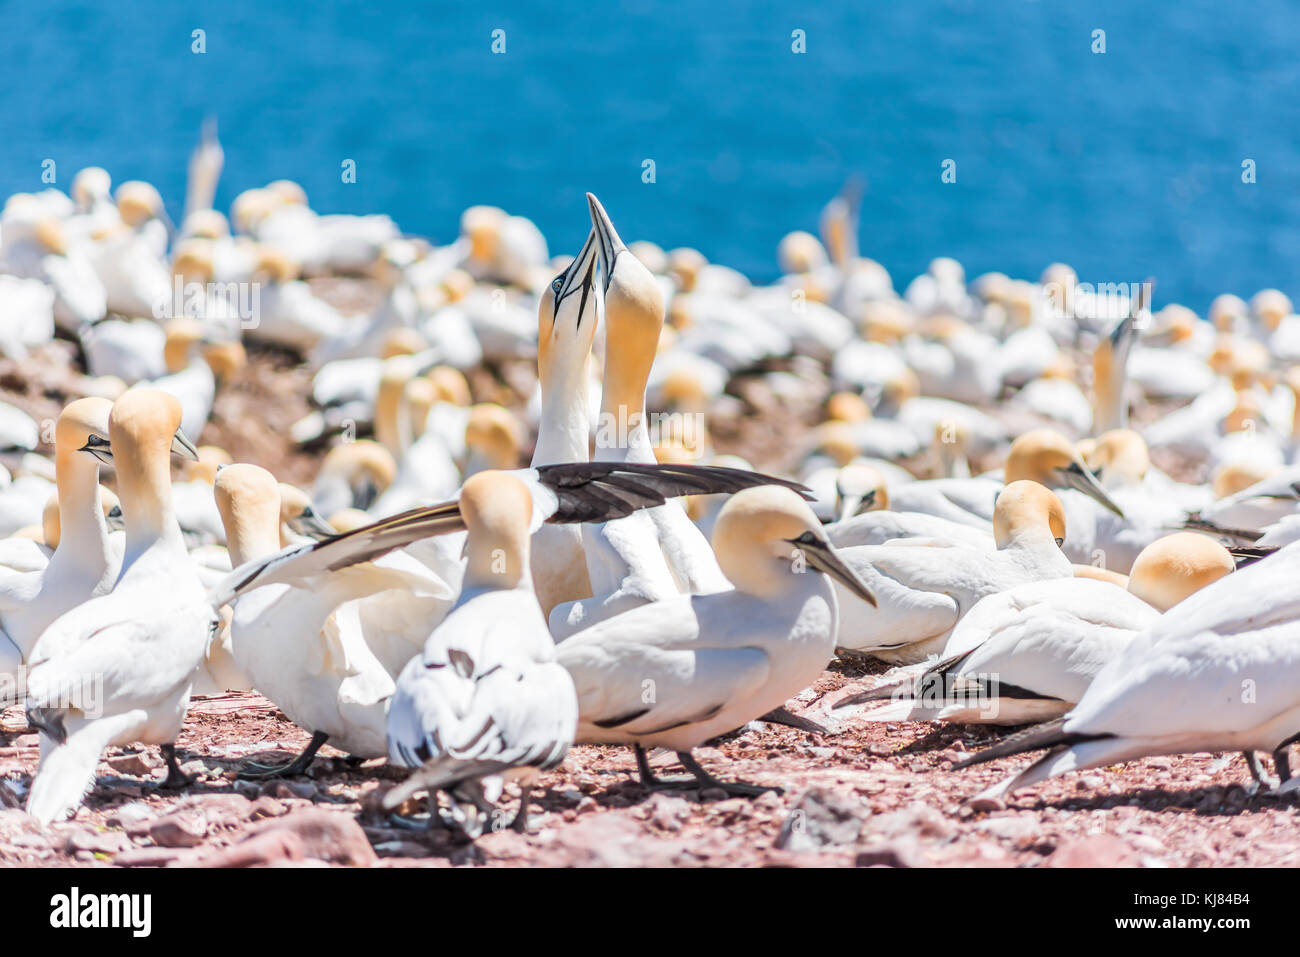 Couple pair of white Gannet bird sitting on whole red egg with shell on Bonaventure Island cliff in Perce, Quebec, Stock Photo